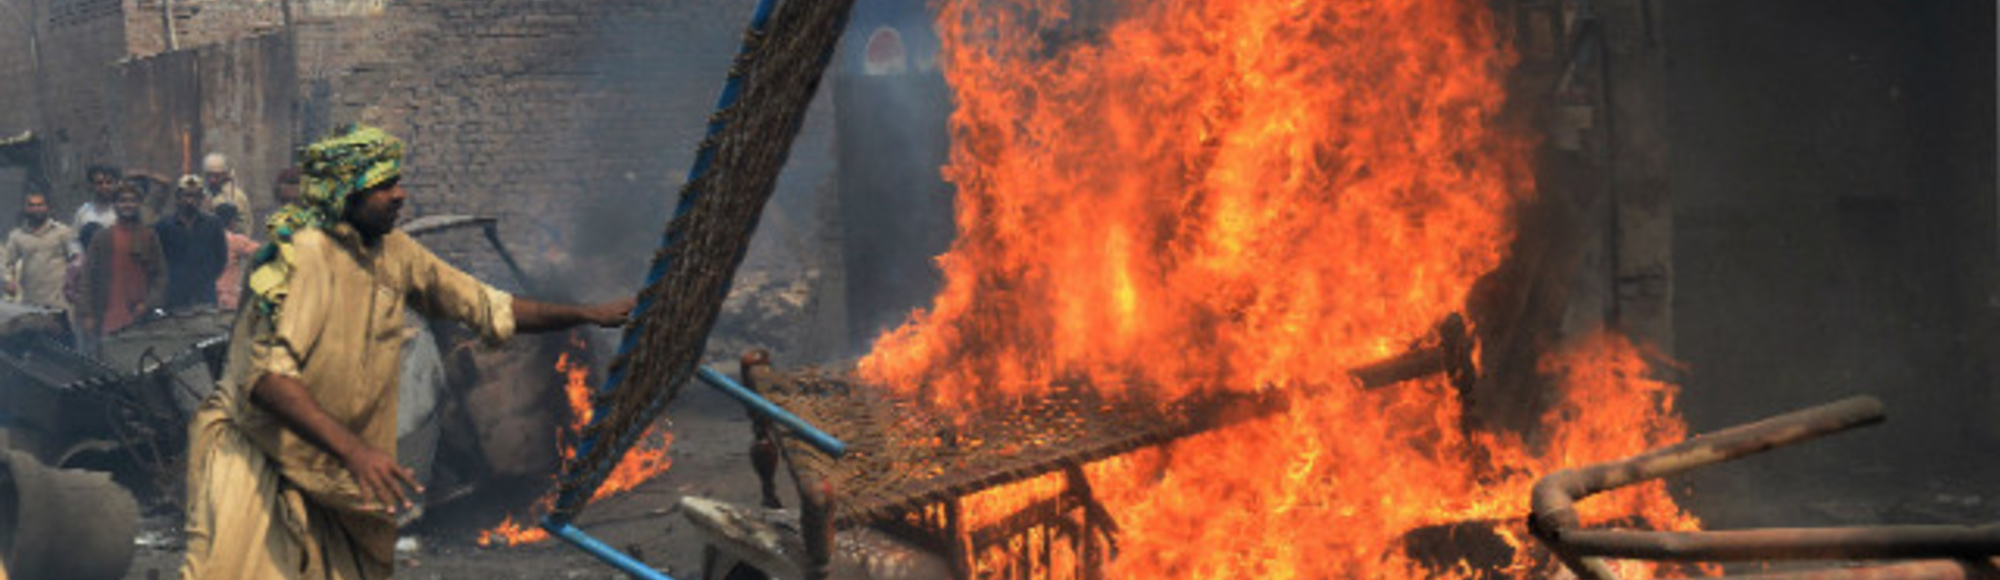 The Joseph Colony Fire: Blasphemy Laws in Pakistan Provide Cover for All Kinds of Grudges